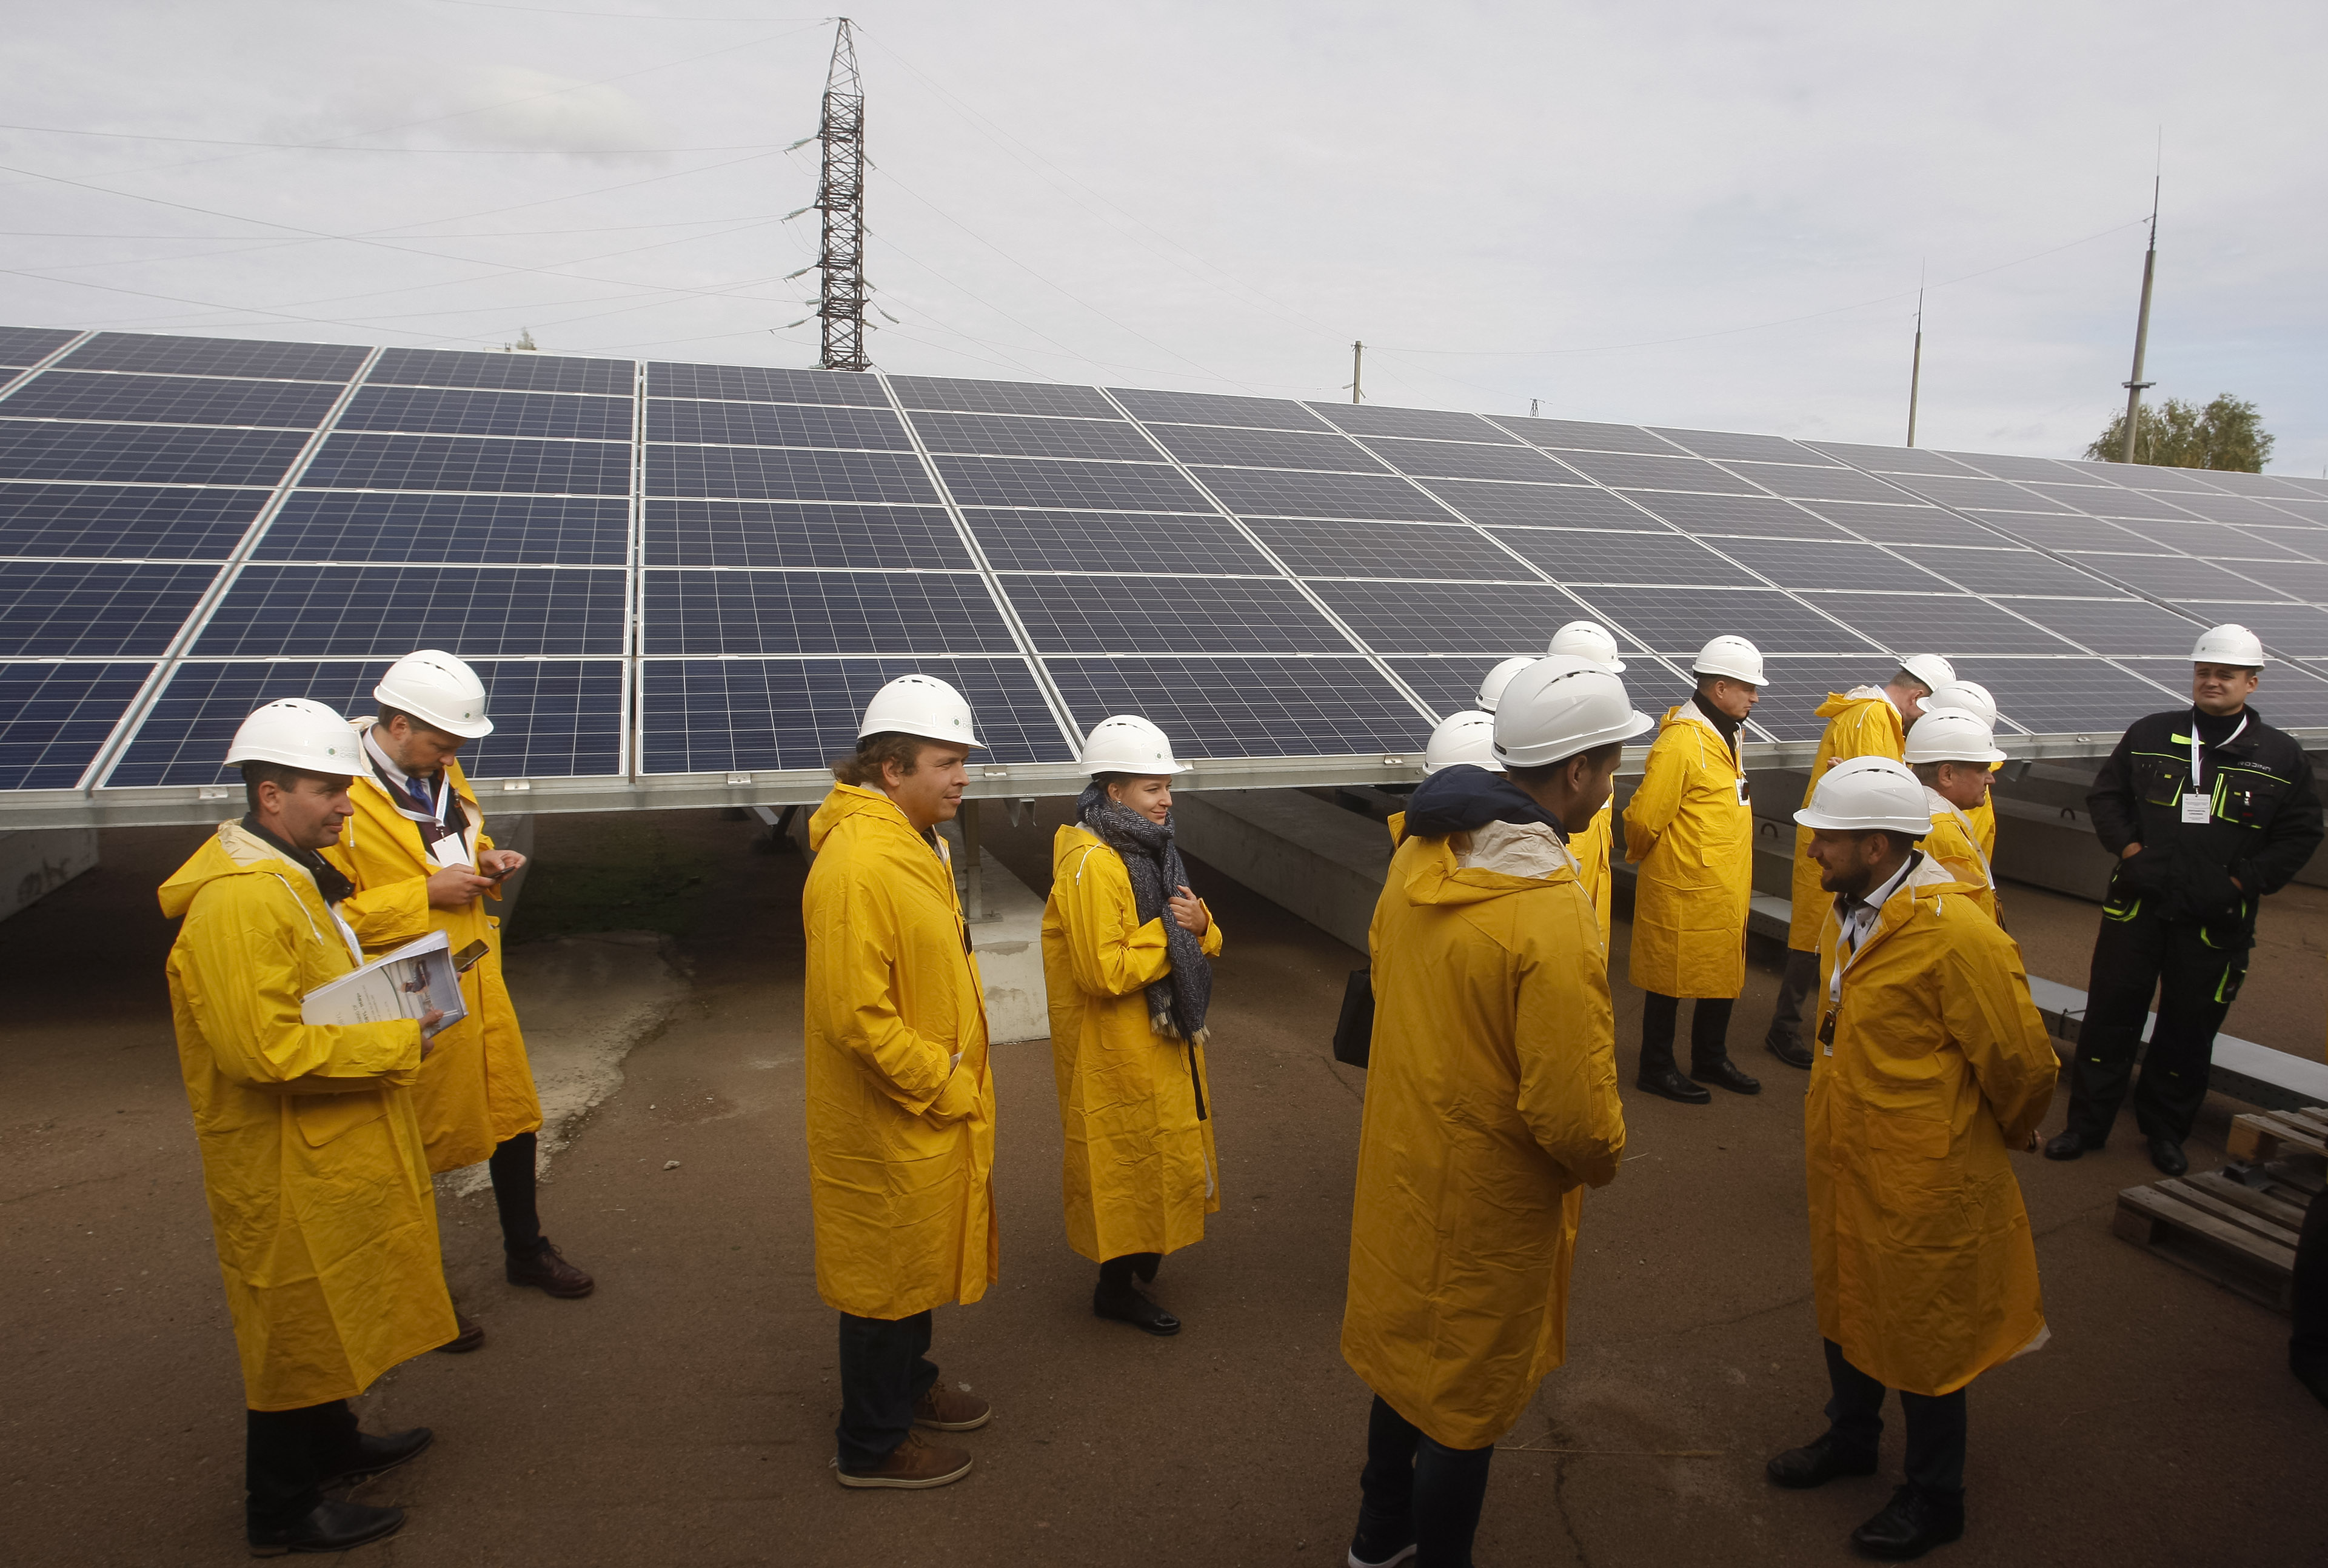 Visitors seen standing next to a solar photovoltaic elements